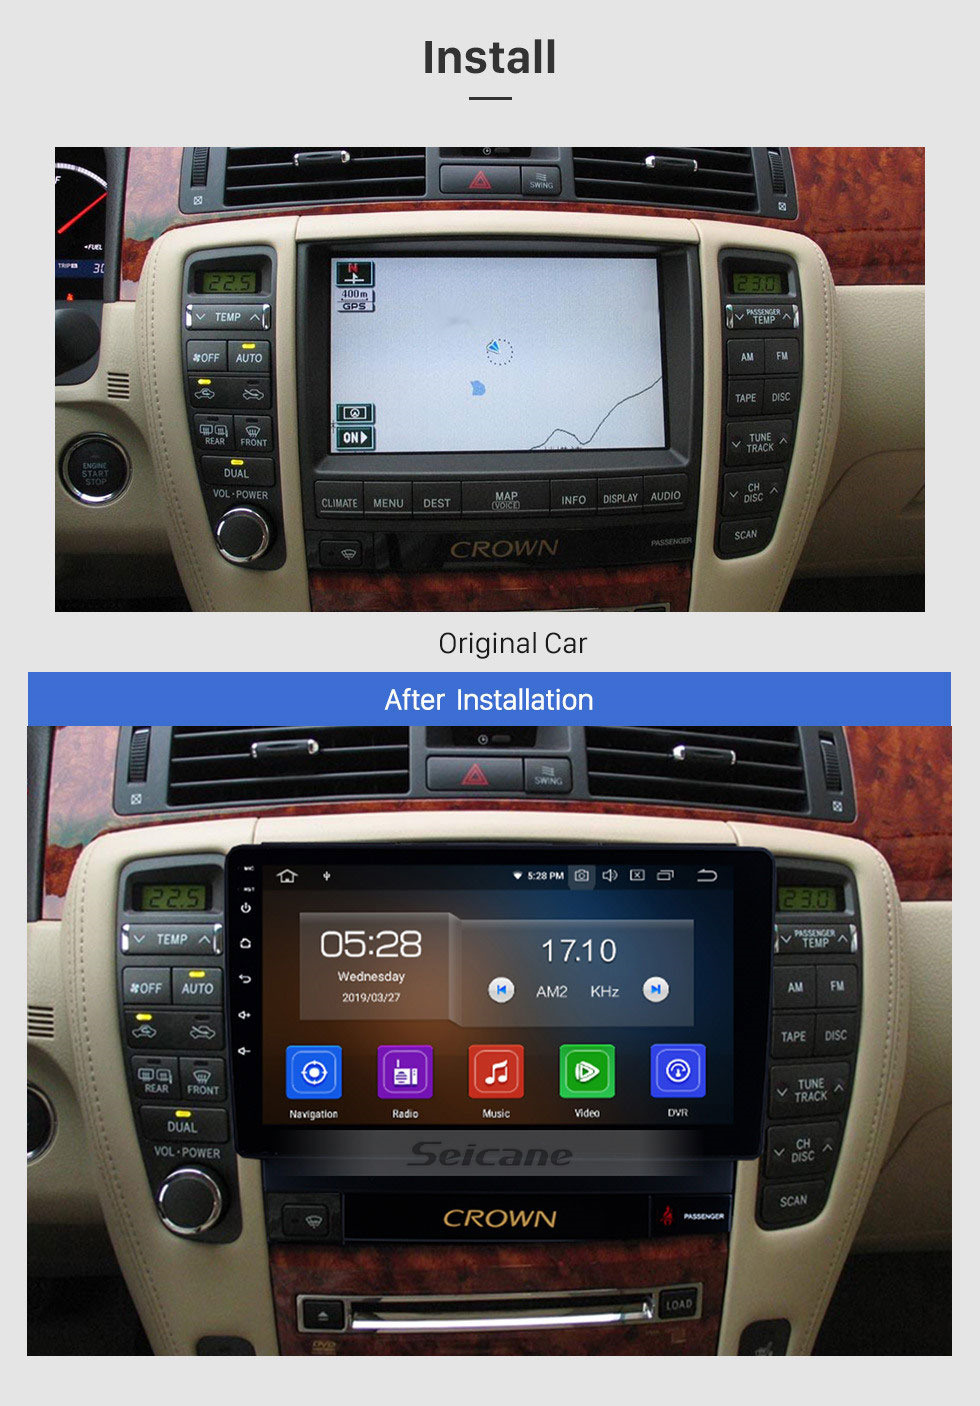 Seicane 9 inch Android 10.0 HD Touch Screen GPS Navigation System Radio 2010 2011 2012 2013 2014 Toyota old crown LHD with Bluetooth USB Support 3G/4G Wifi Digital TV Mirror Link  Steering Wheel Control